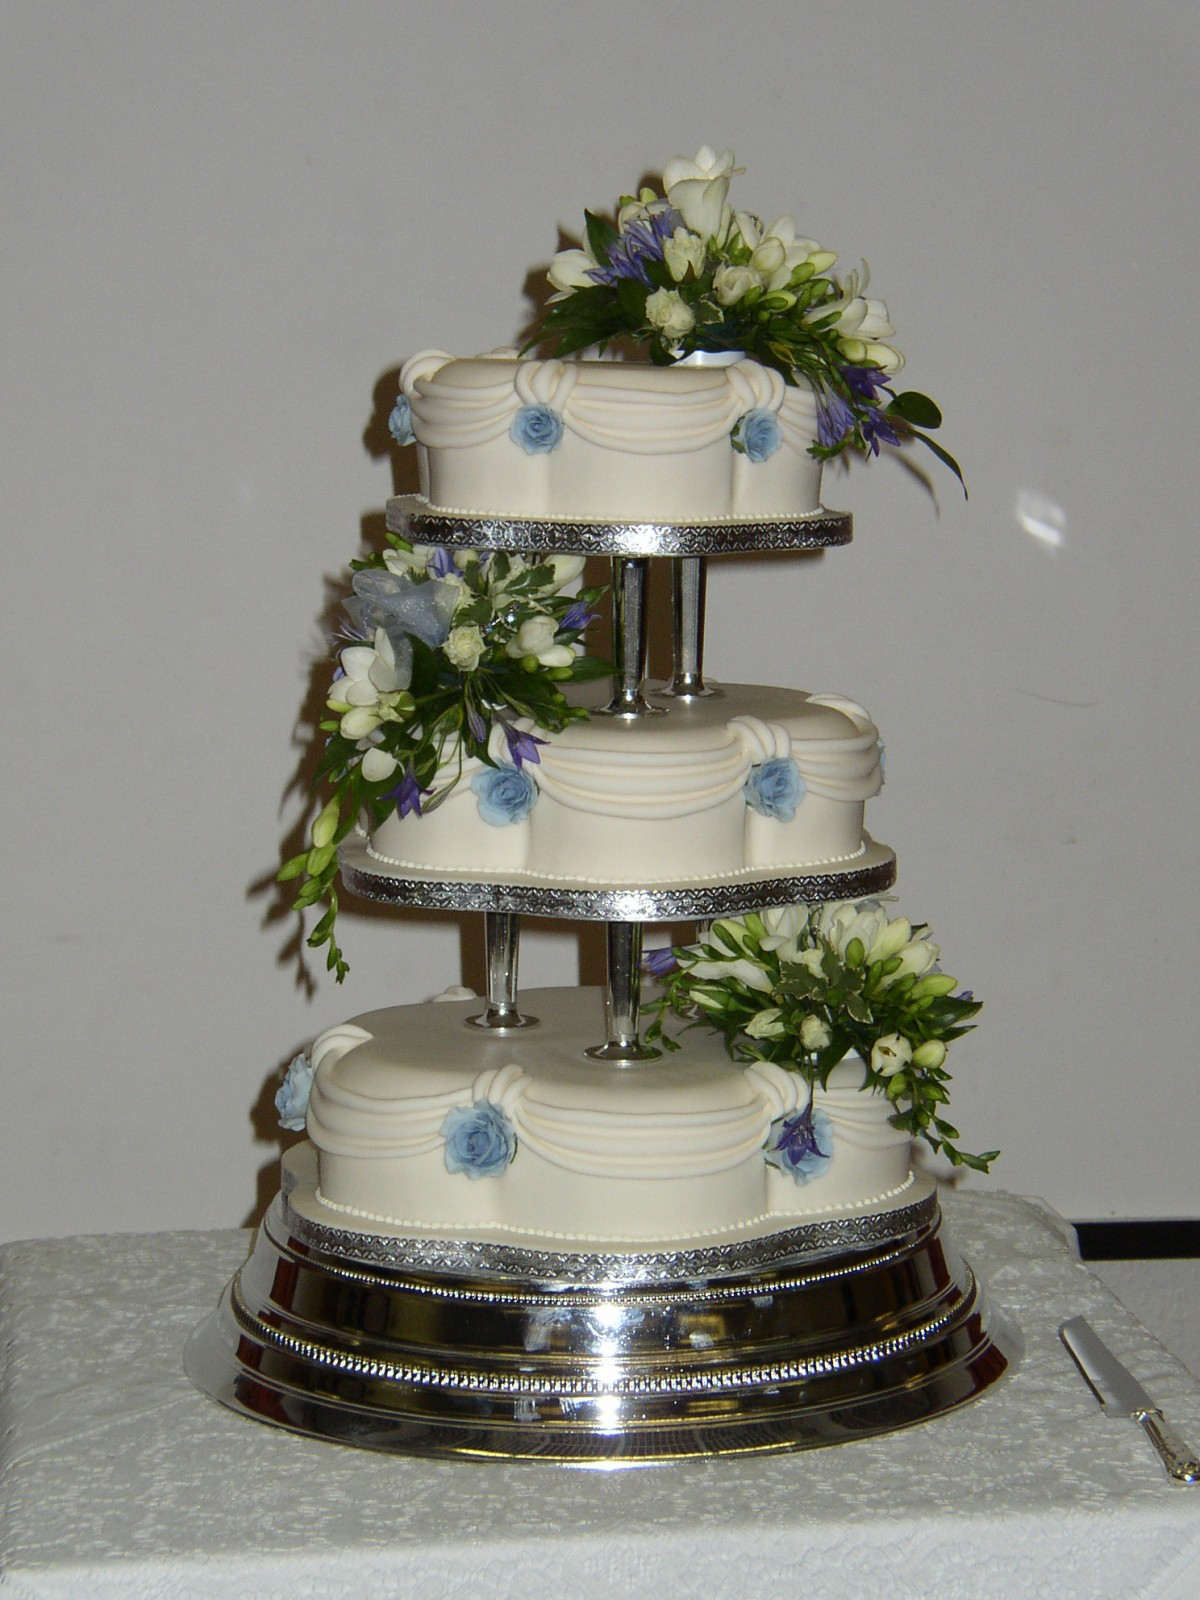 3 Tier Petal Wedding Cake With Fresh Flowers Susie s Cakes